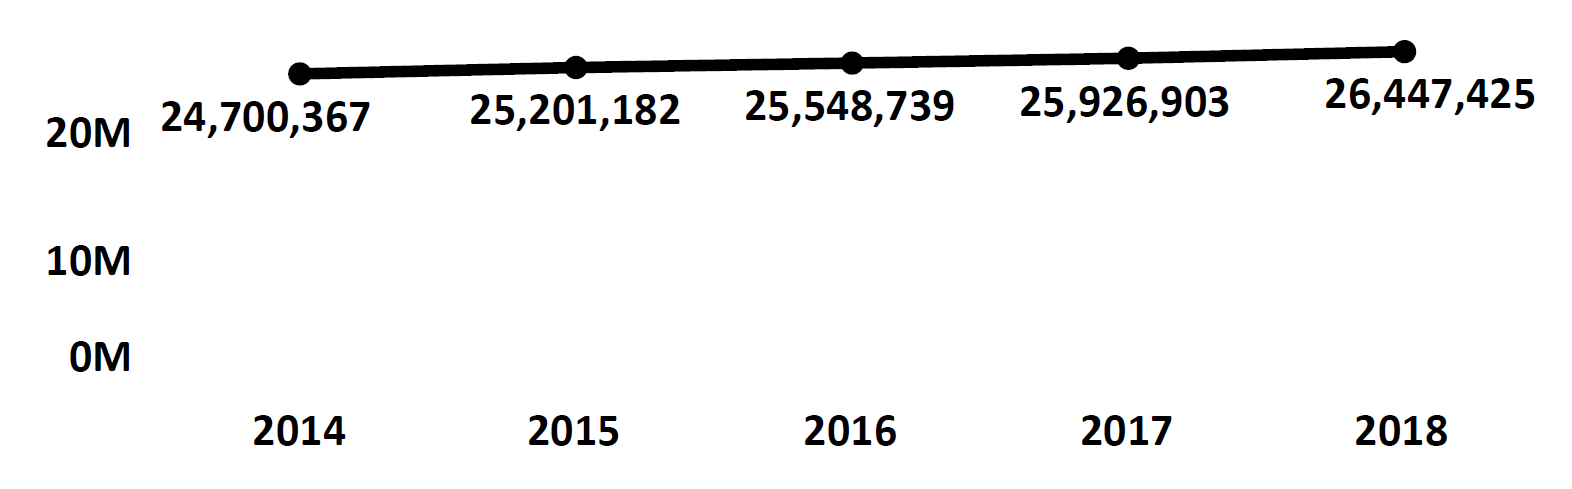 Graph of active Do Not Call registrations in California each fiscal year from 2014 to 2018. In 2014 there were 24.7 million numbers registered, which increased steadily each year. In 2018 there were 26.4 million numbers registered.